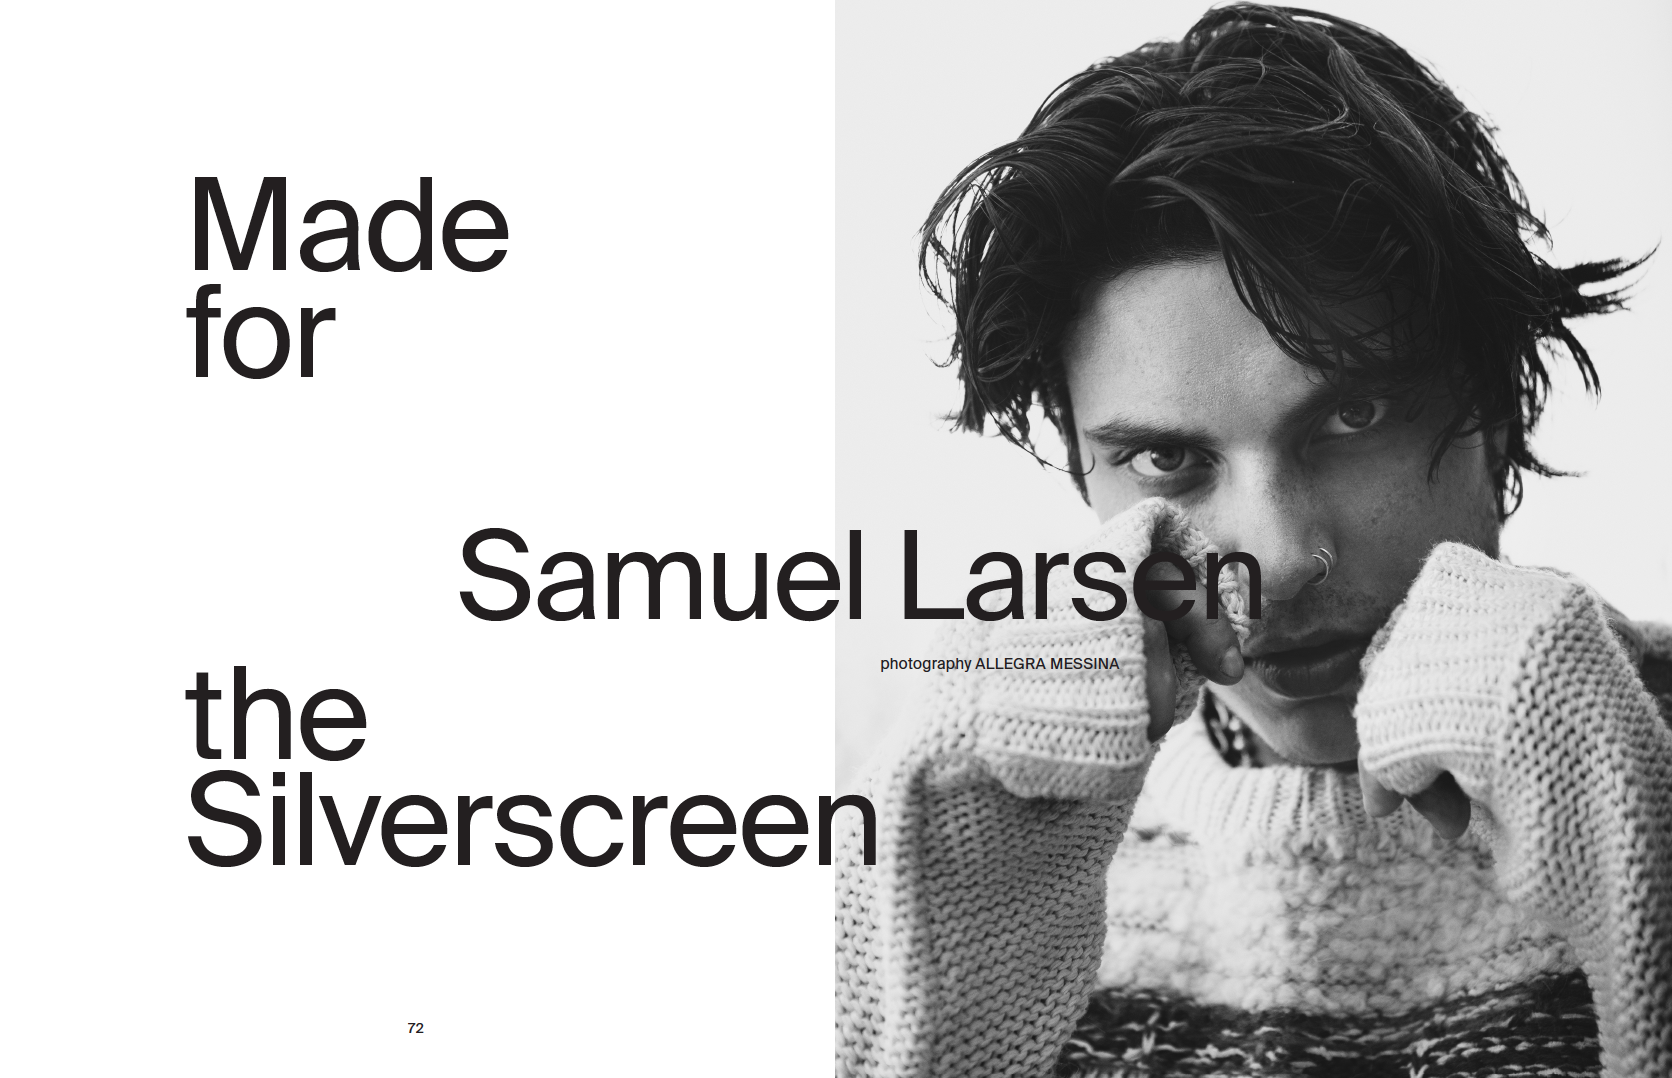 MADE FOR THE SILVERSCREEN: SAMUEL LARSEN - more →